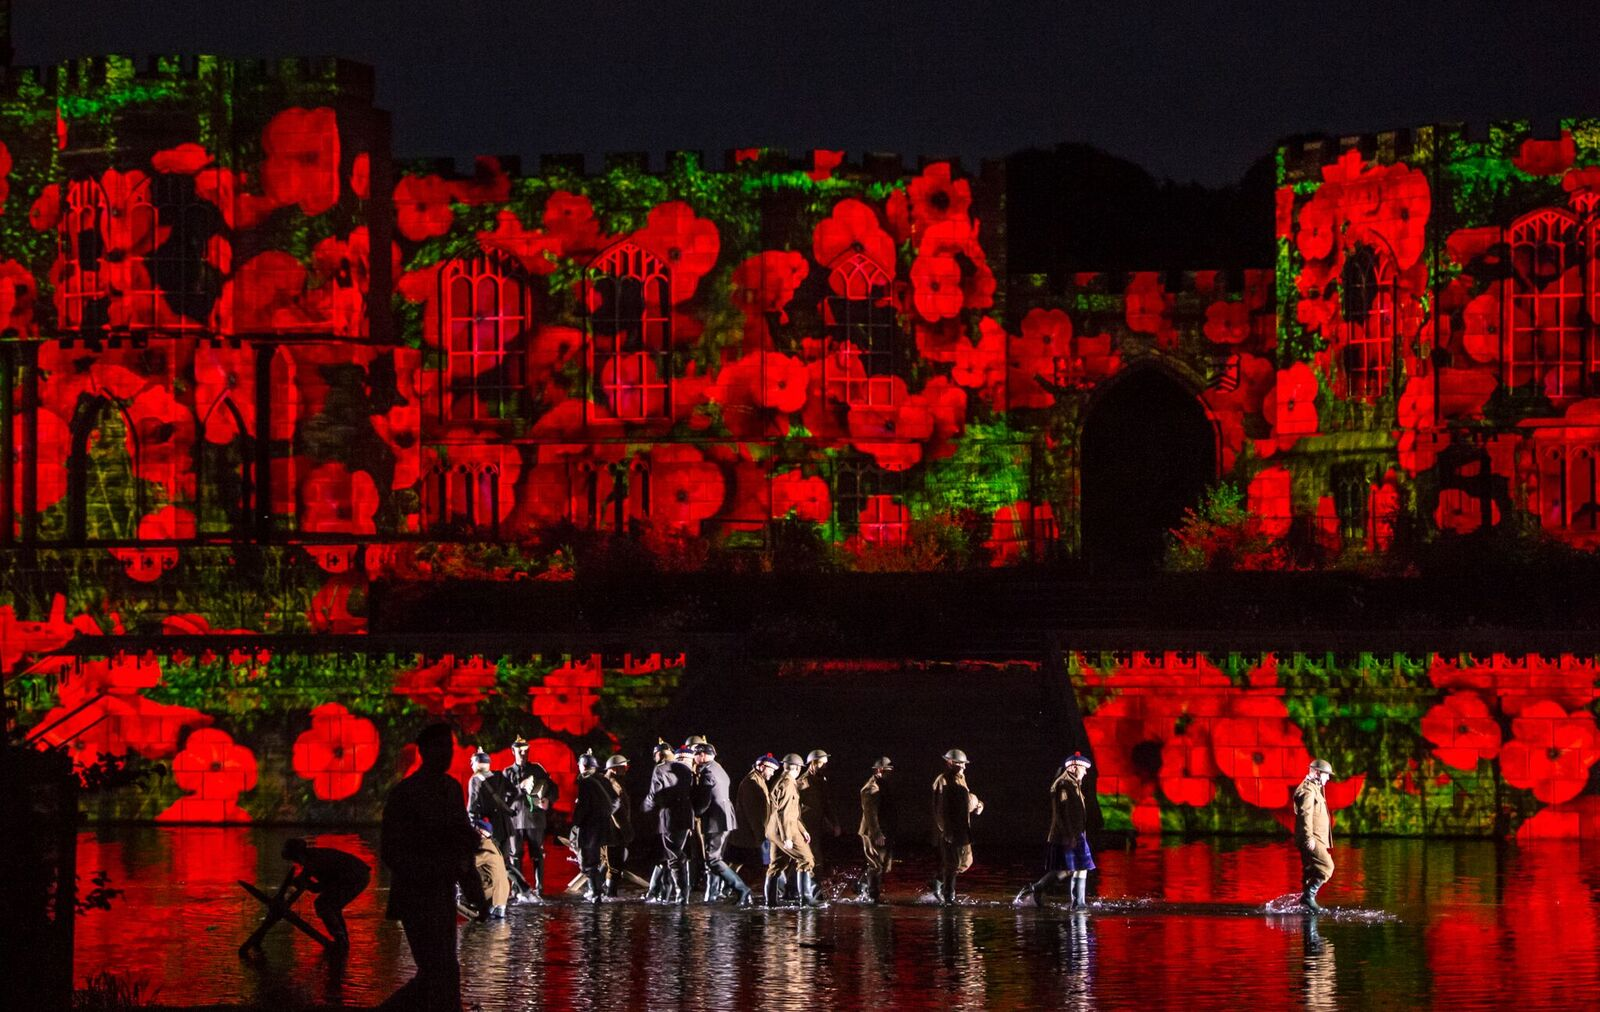 Kynren: Poppies in a poignant moment